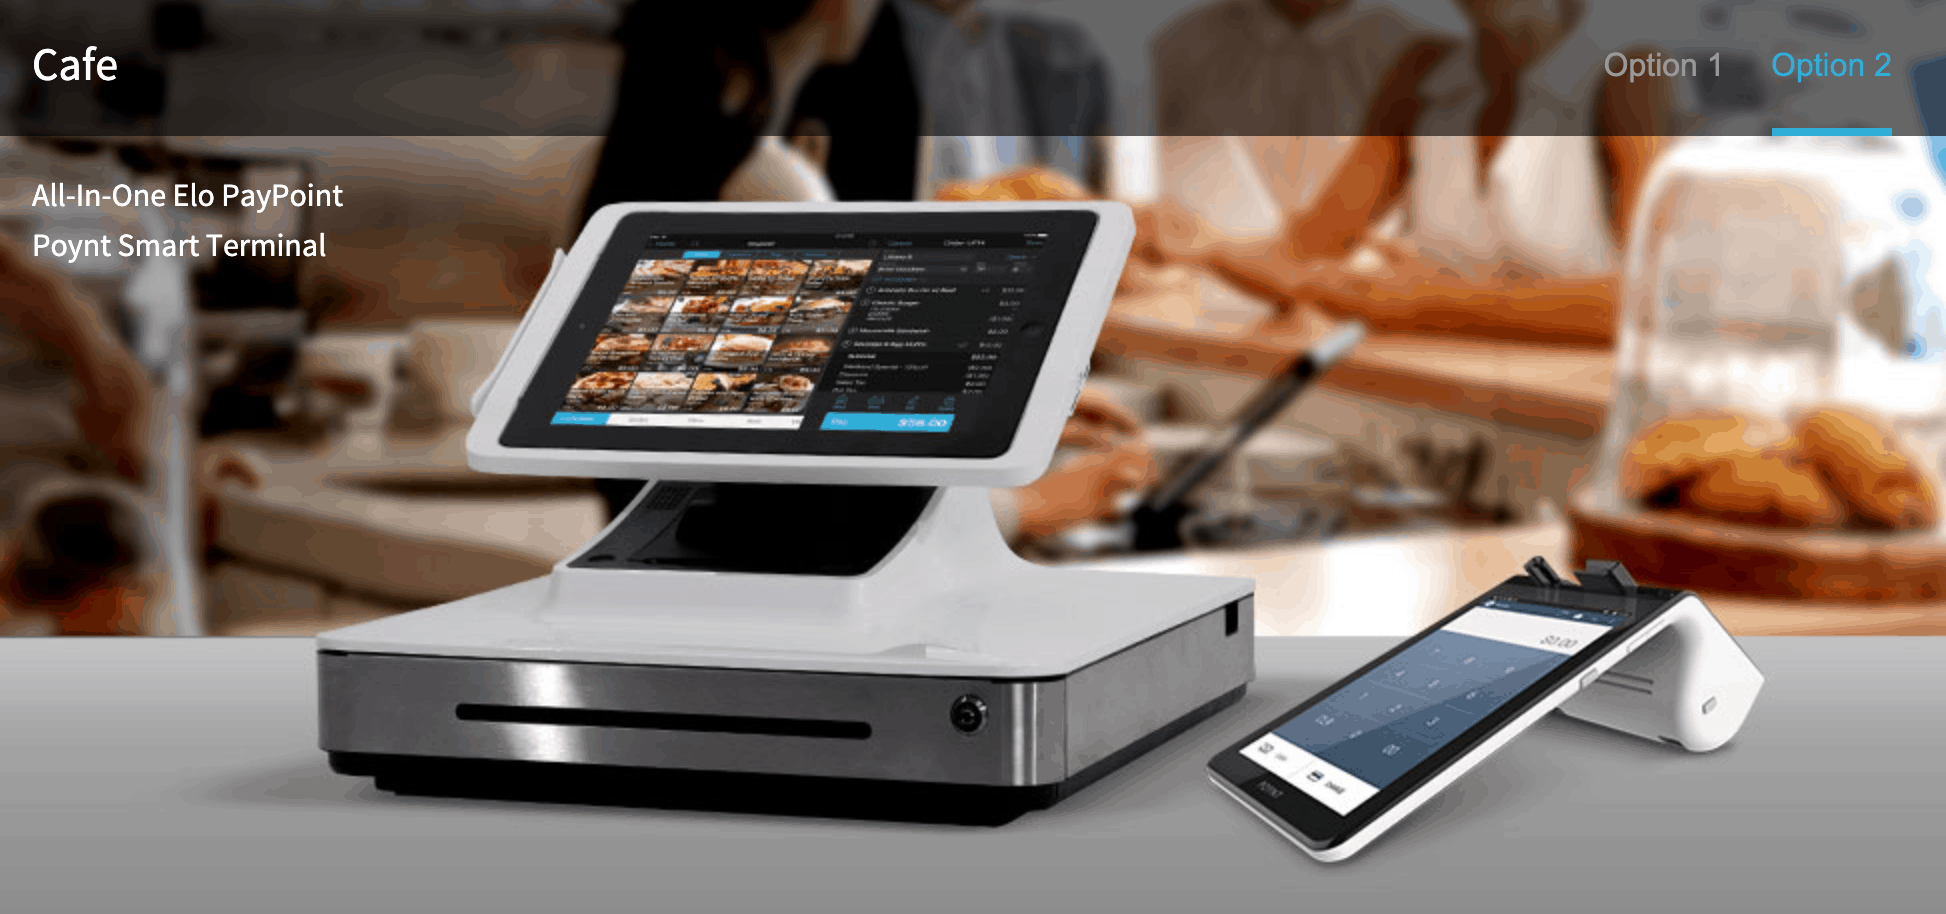 talech cafe pos hardware bundle with elo paypoint, ipad, and poynt smart terminal